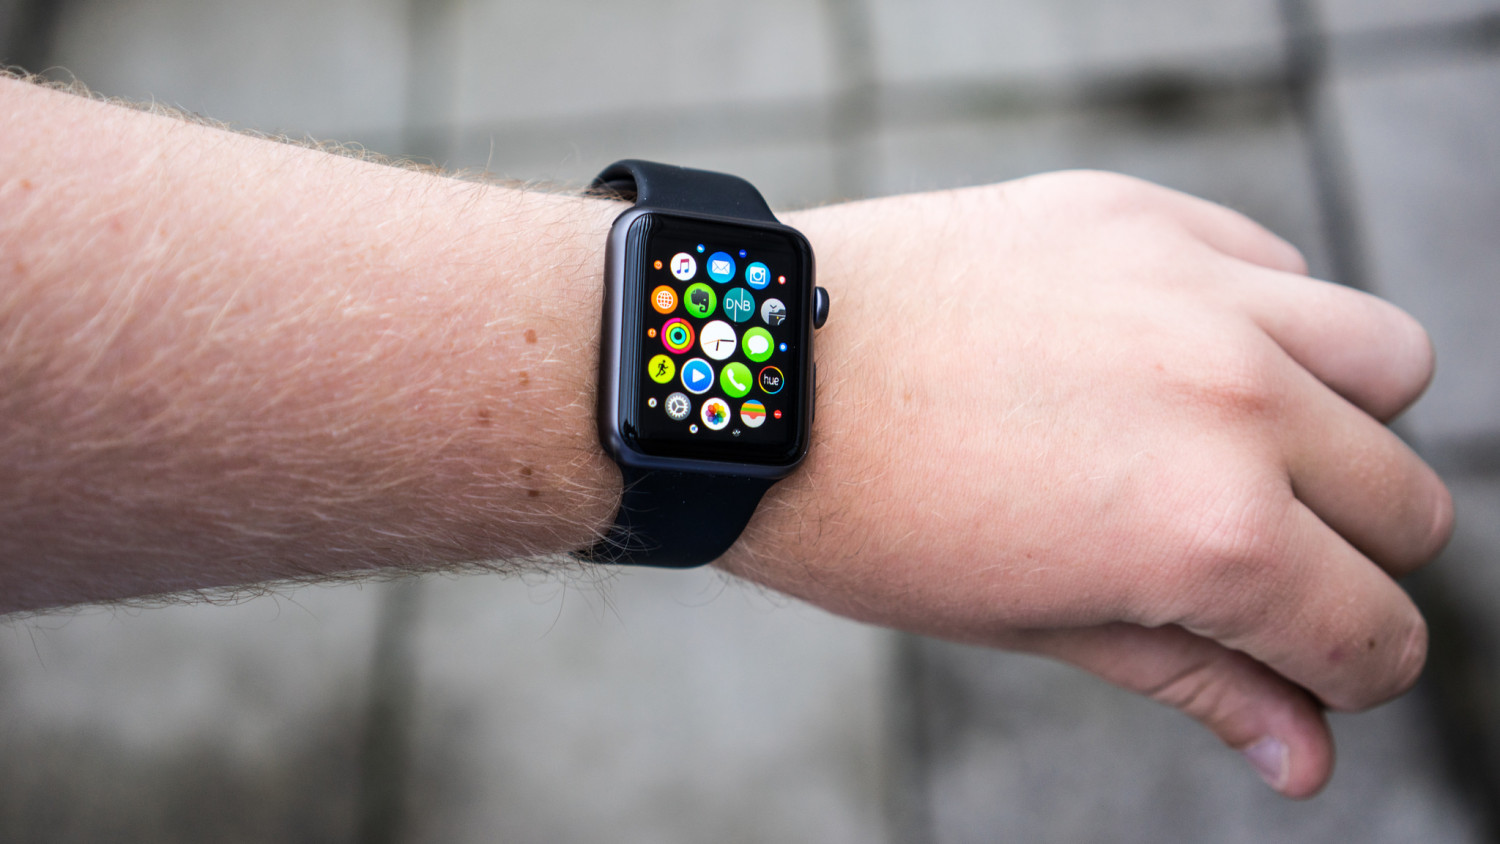 AppleWatch_Chris-Håvard Berge_Flickr_CC